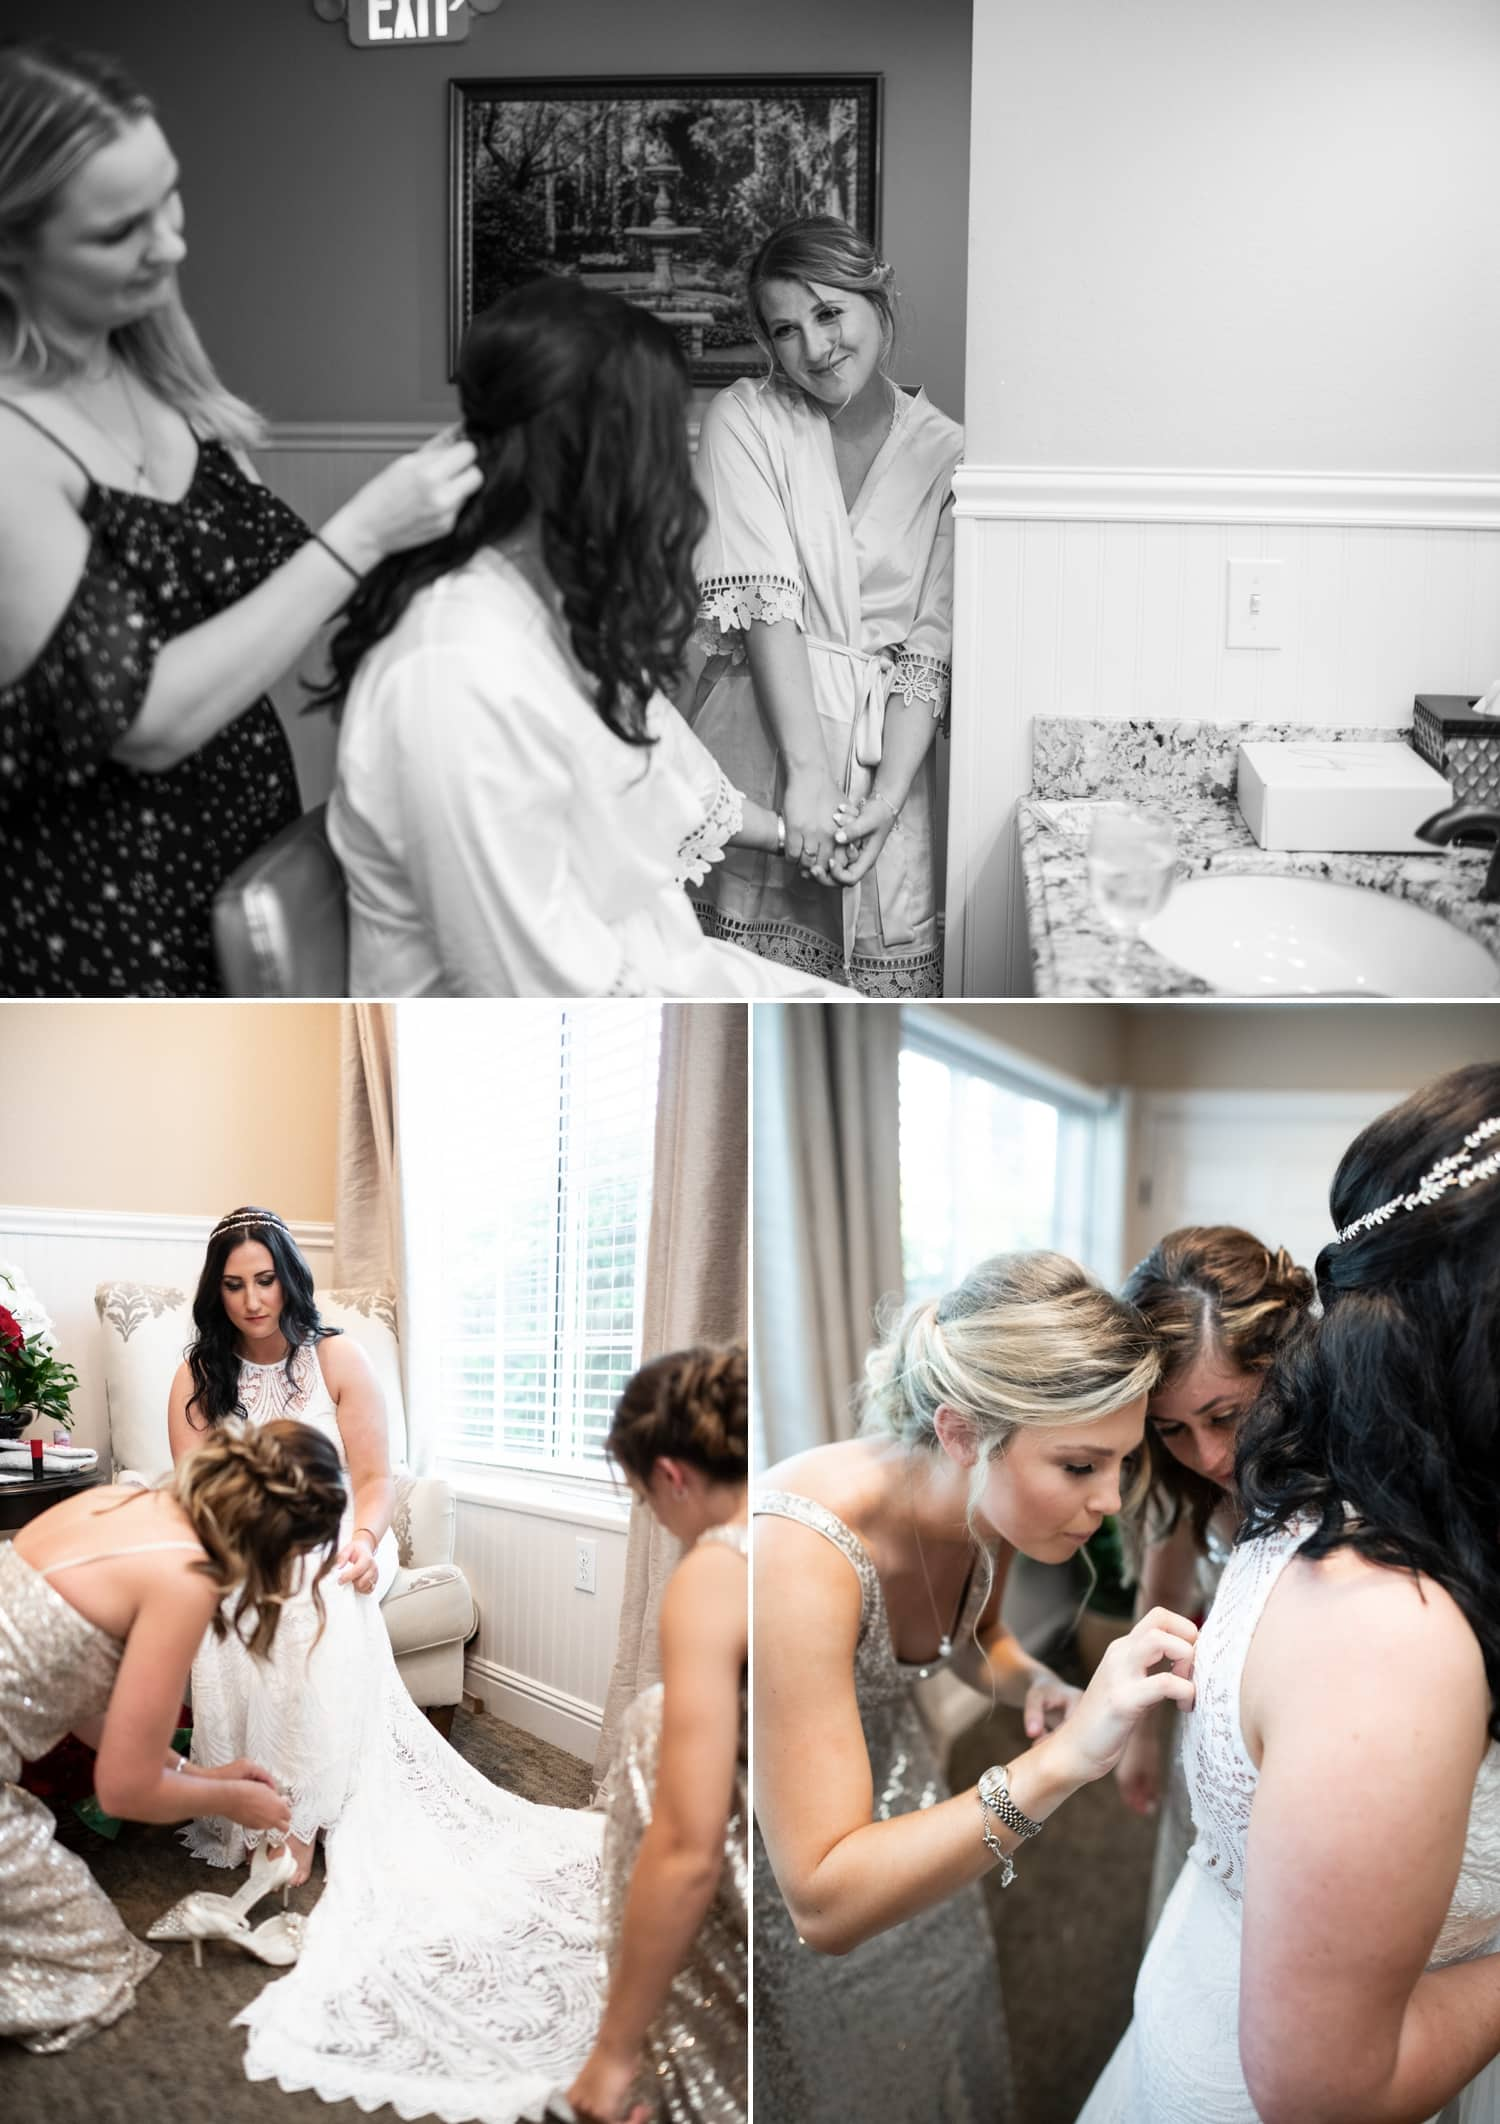 Bride getting ready for her wedding at Grand Tradition Estate.